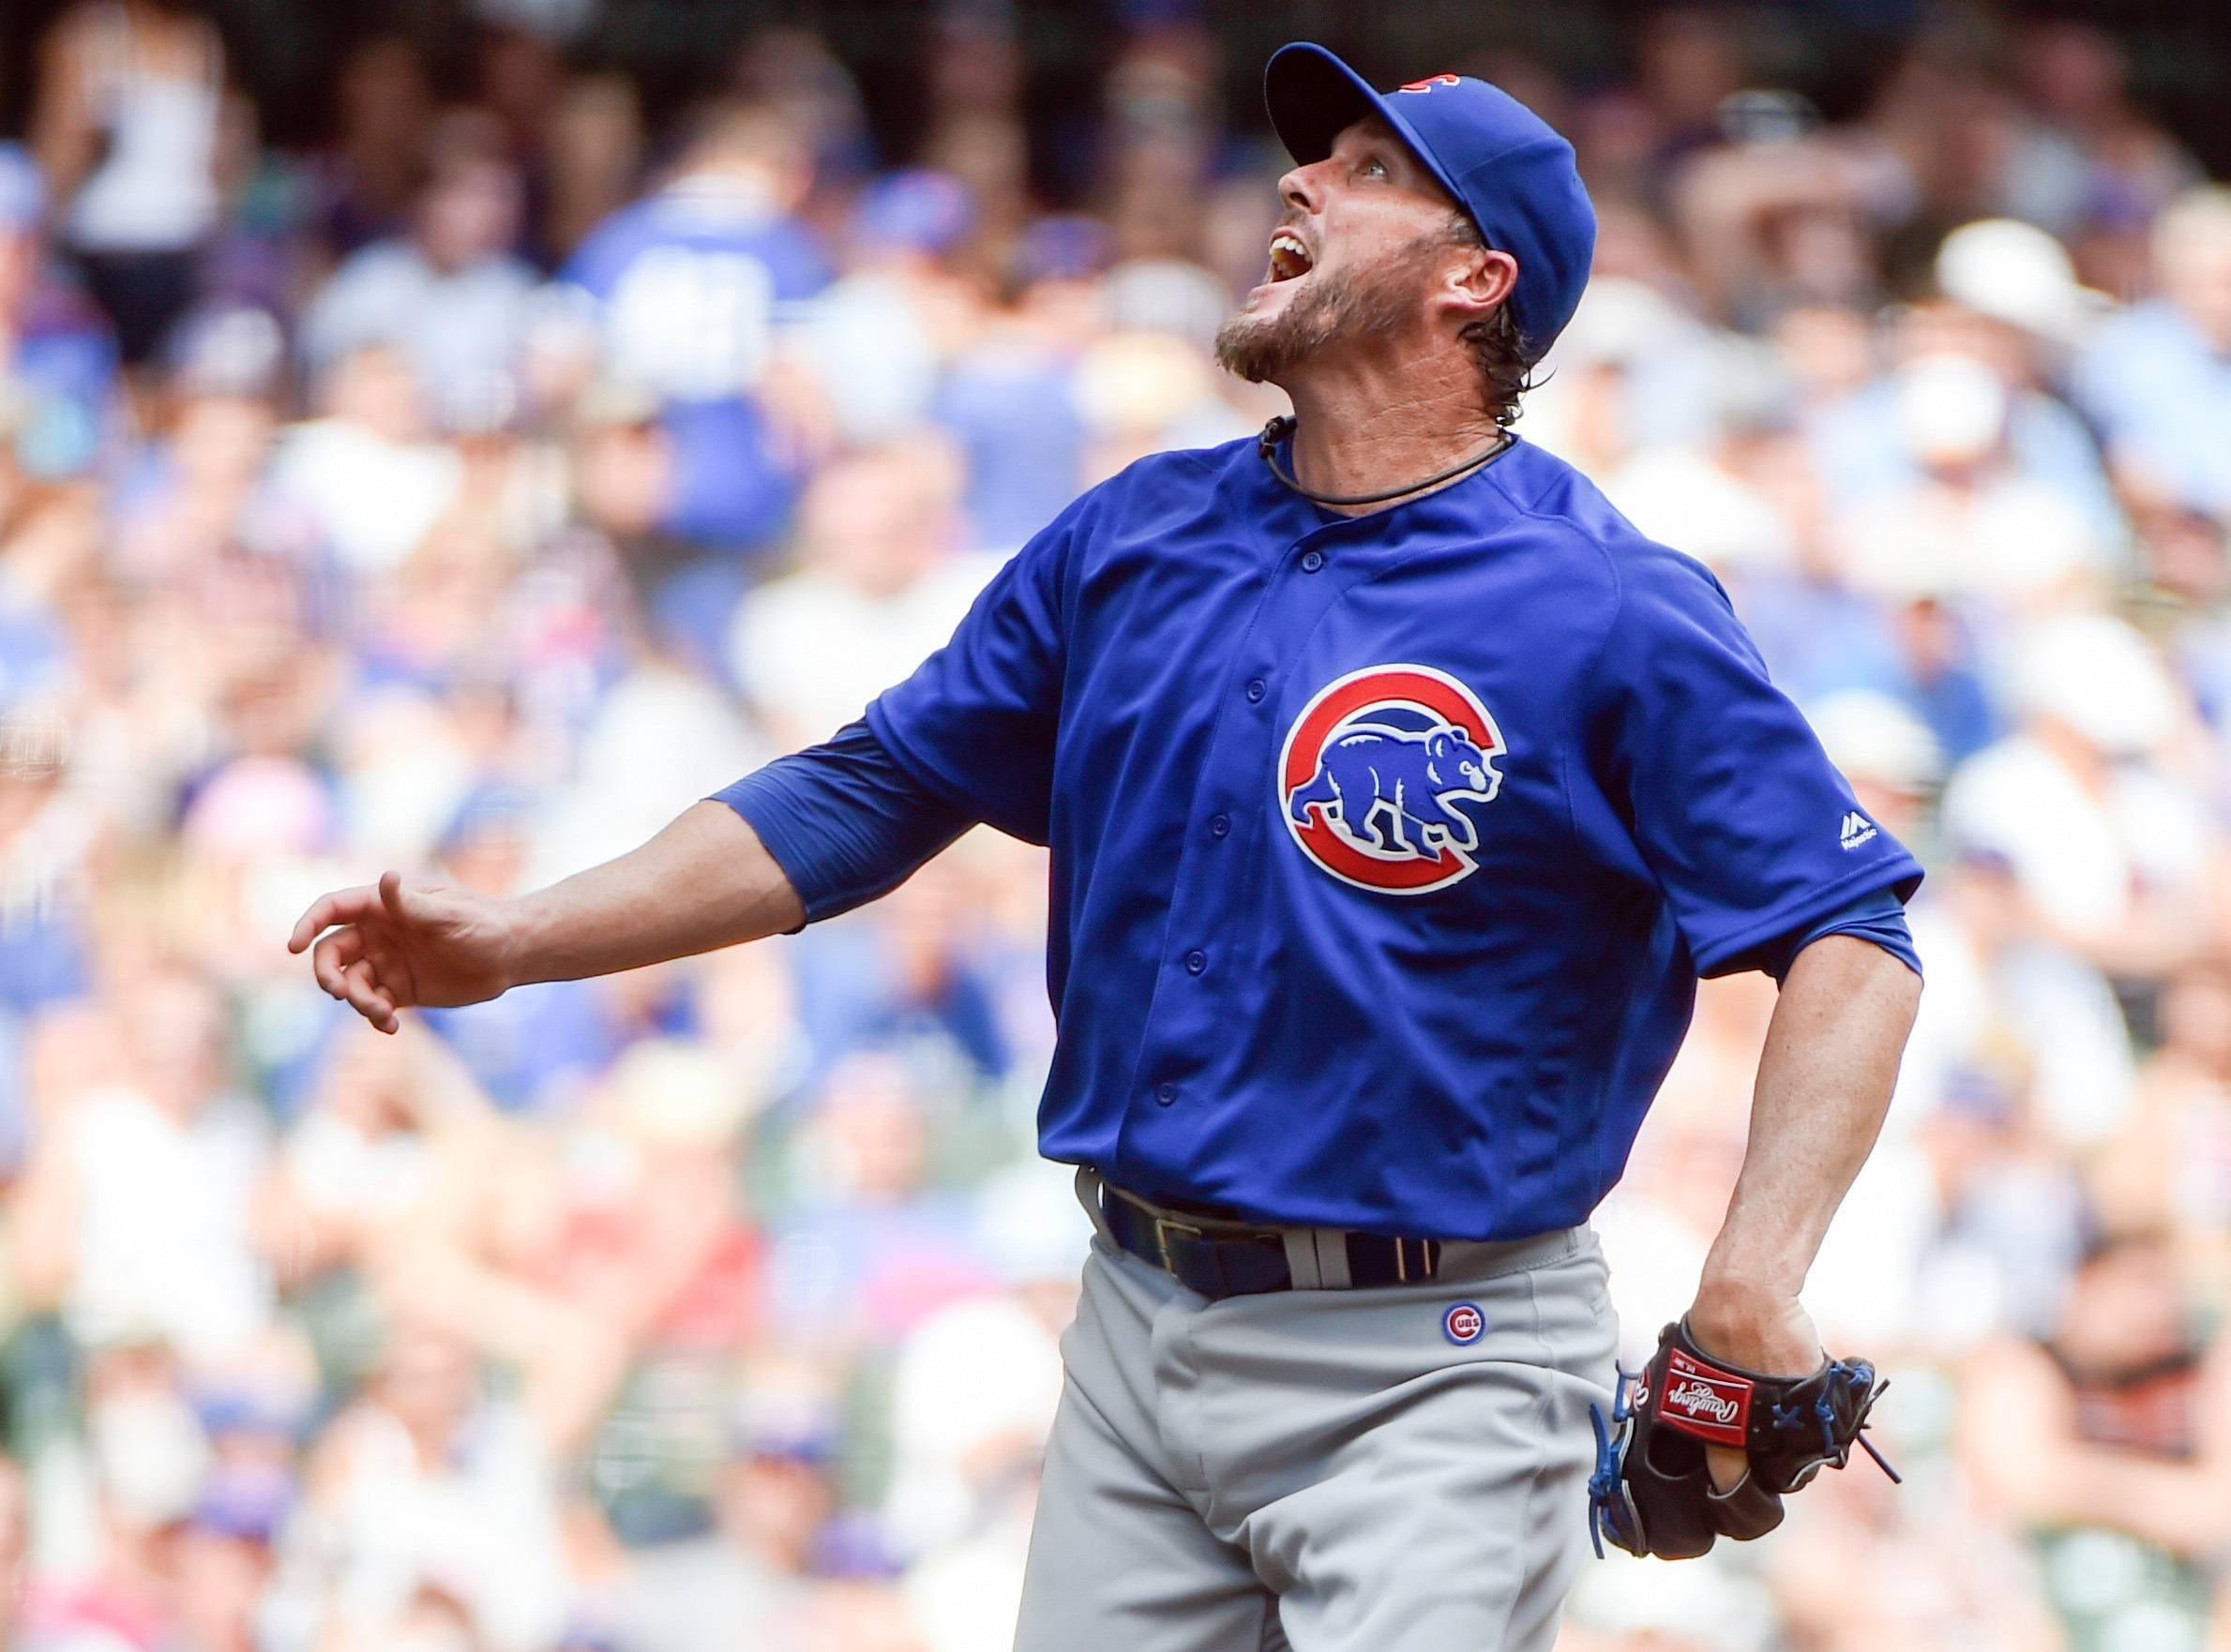 Chicago Cubs pitcher Joe Nathan reacts after a throw during the sixth inning of a baseball game against the Milwaukee Brewers, Sunday, July 24, 2016, in Milwaukee. (AP Photo/Benny Sieu)